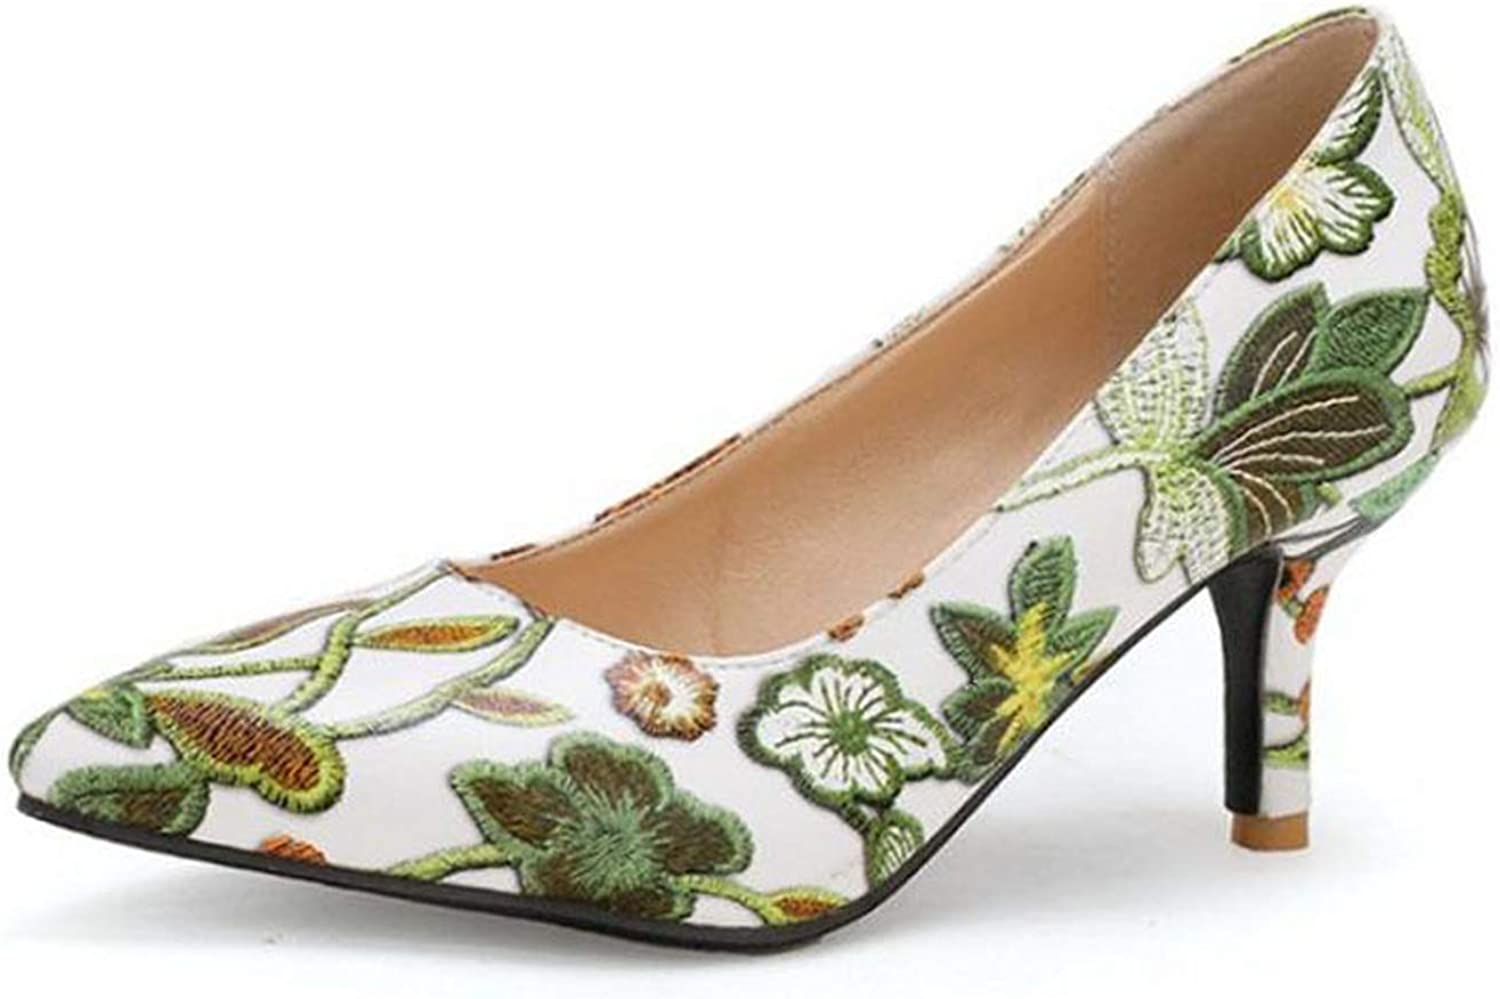 Mao YiE Women's High Heels Pumps Embroidery Flowers Slip On Pointed Toe Pumps shoes Women